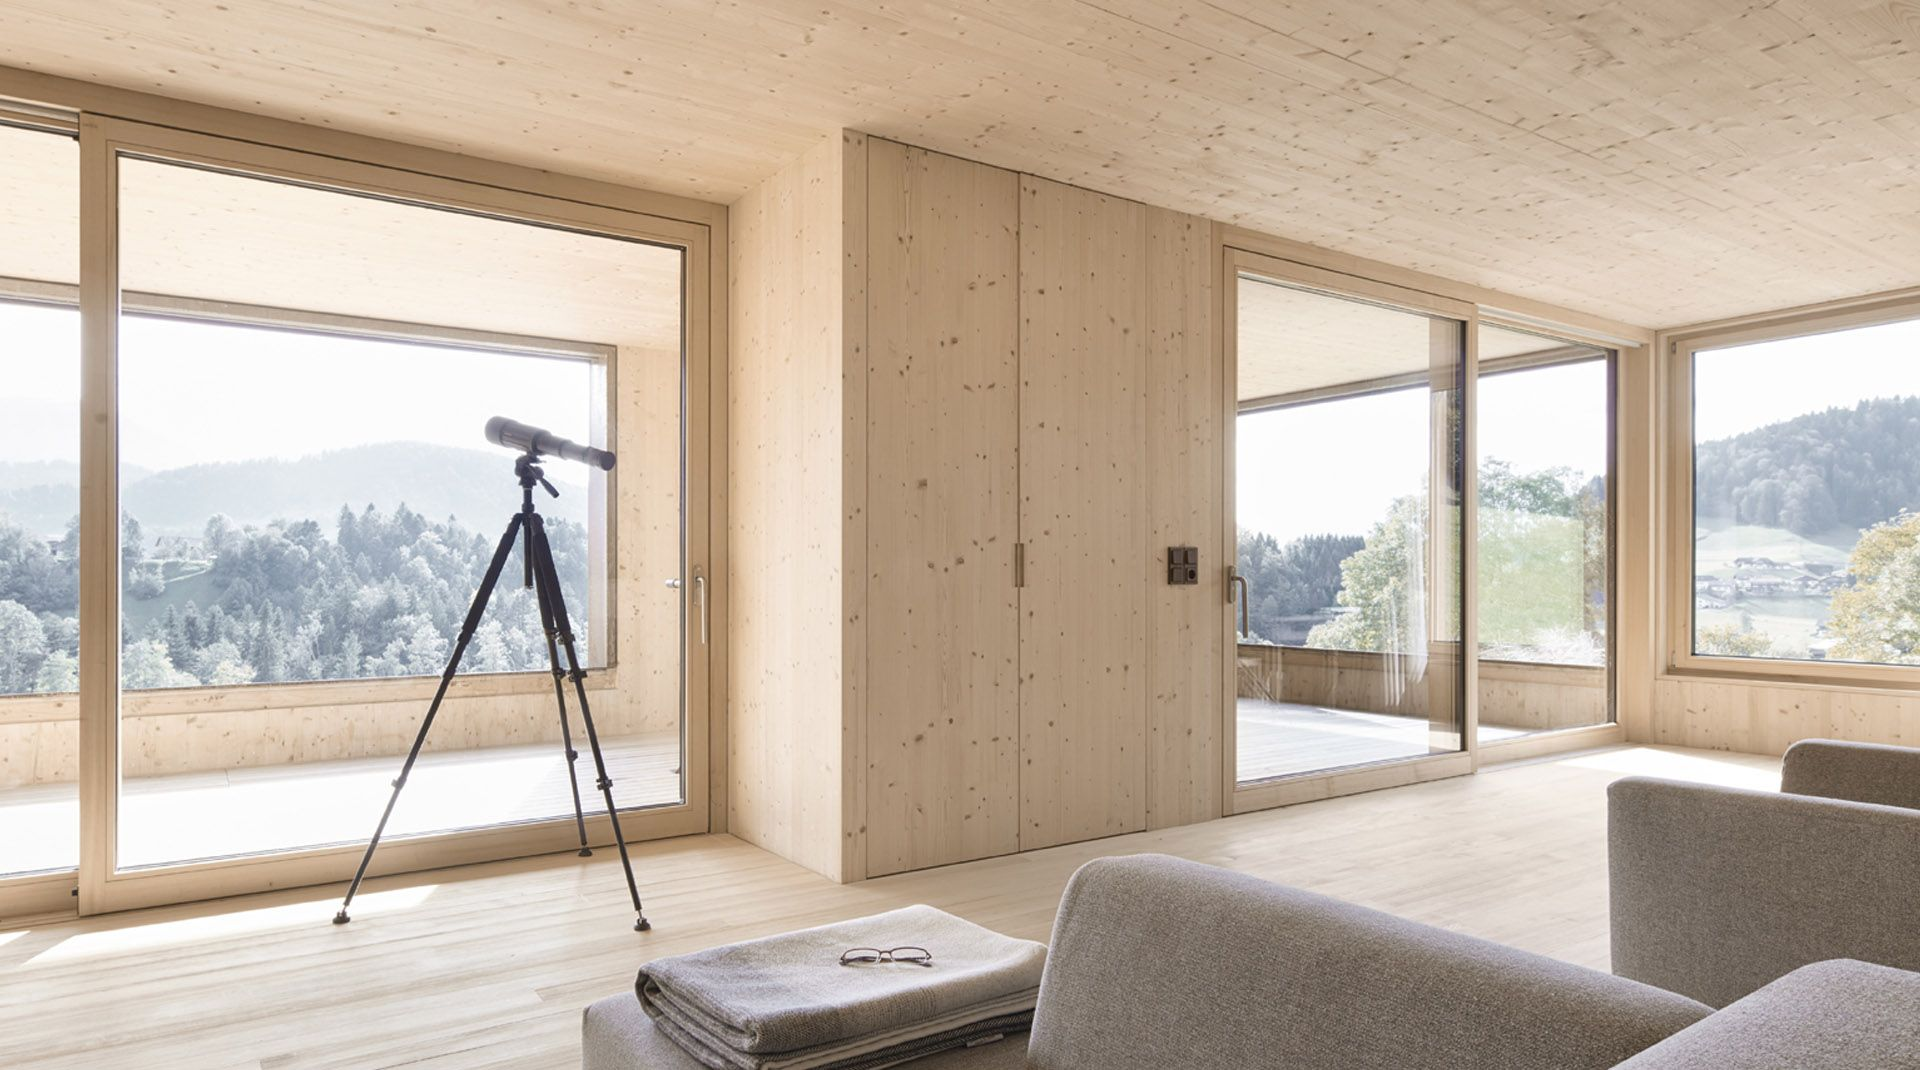 Cltarchitecture Cross Laminated Timber Clt House Timber House Interior Architecture Residential Interior